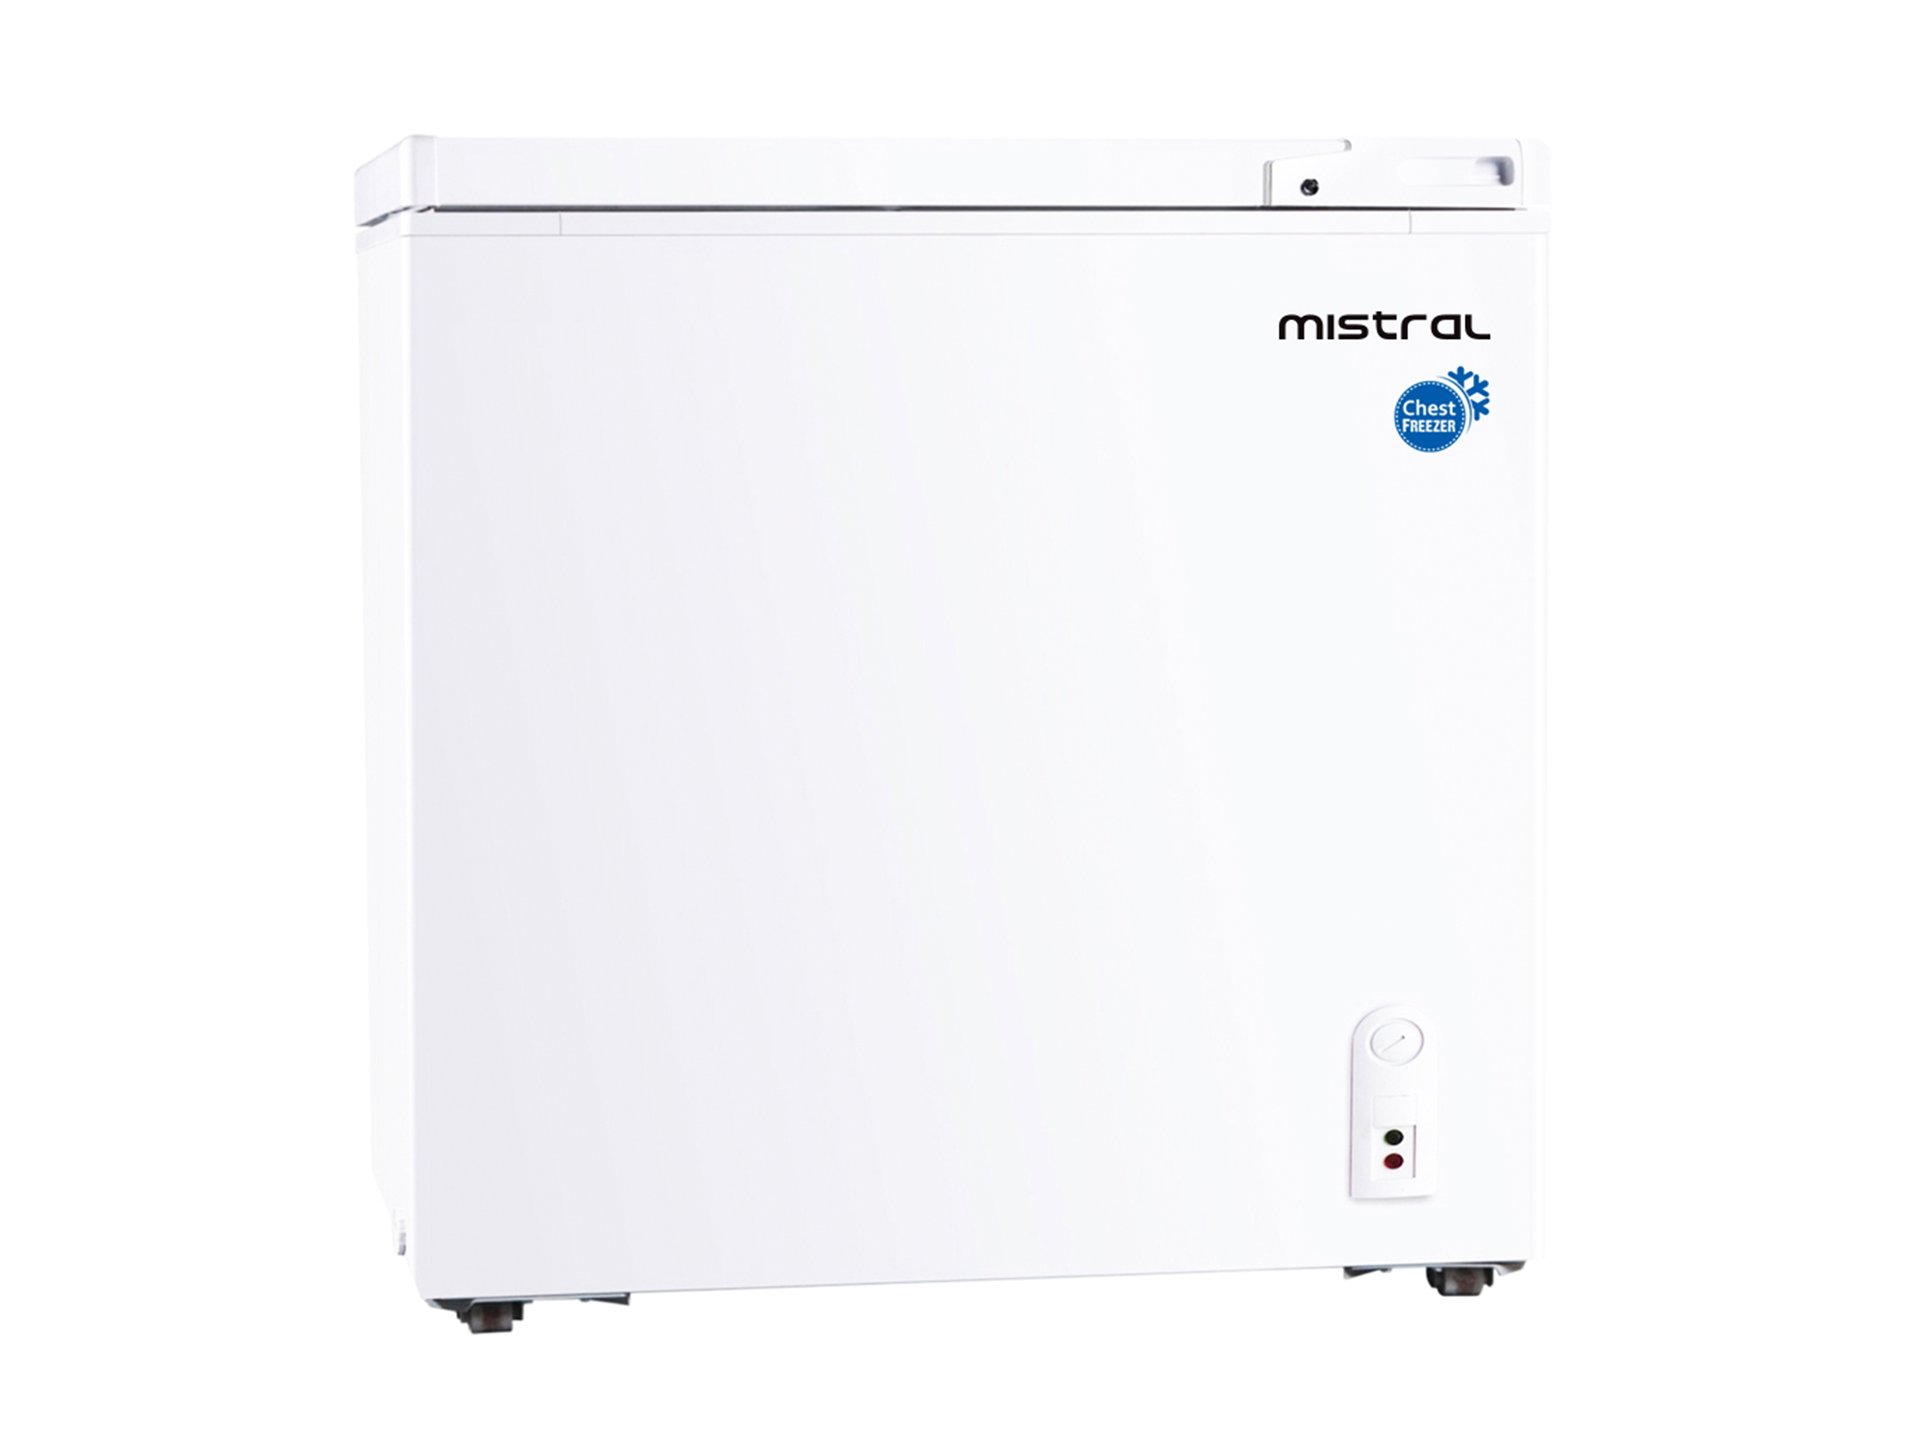 Yeobuild HomeStore Mistral Chest Freezer MFC227A best chest freezers in singapore